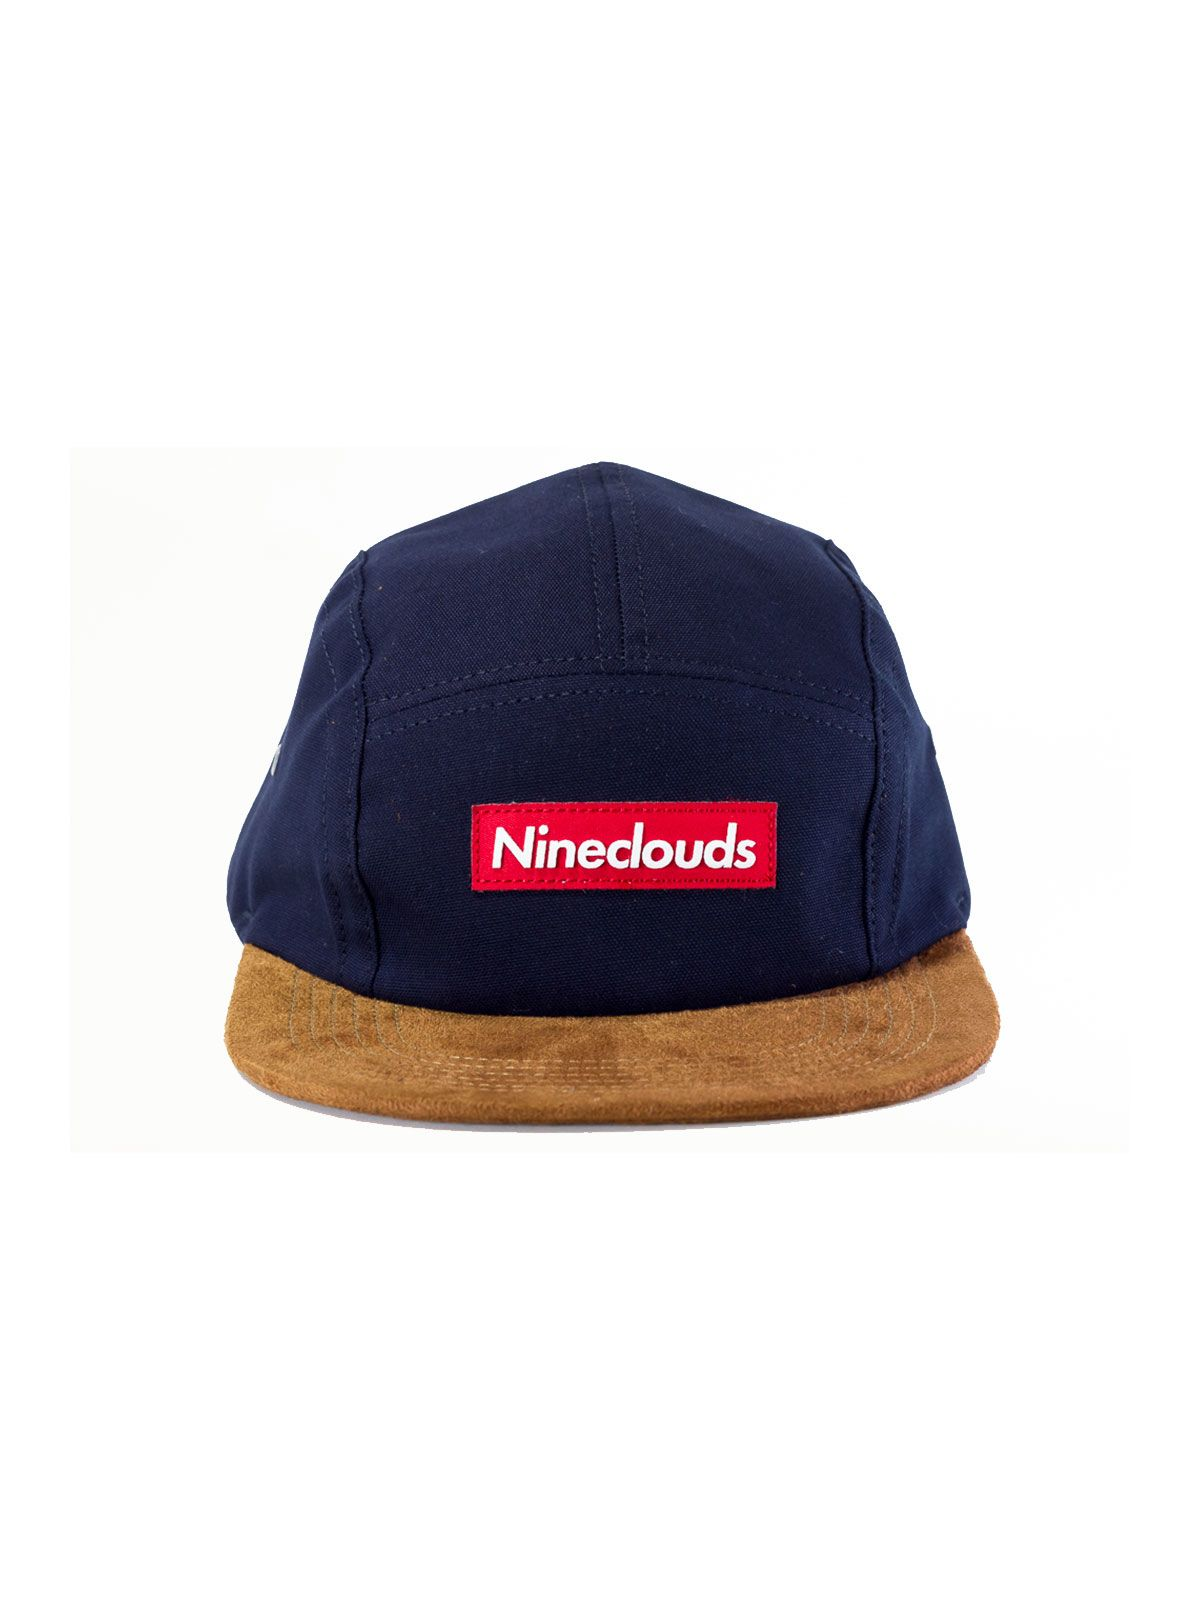 bone-nineclouds-five-panel-duo-1-image